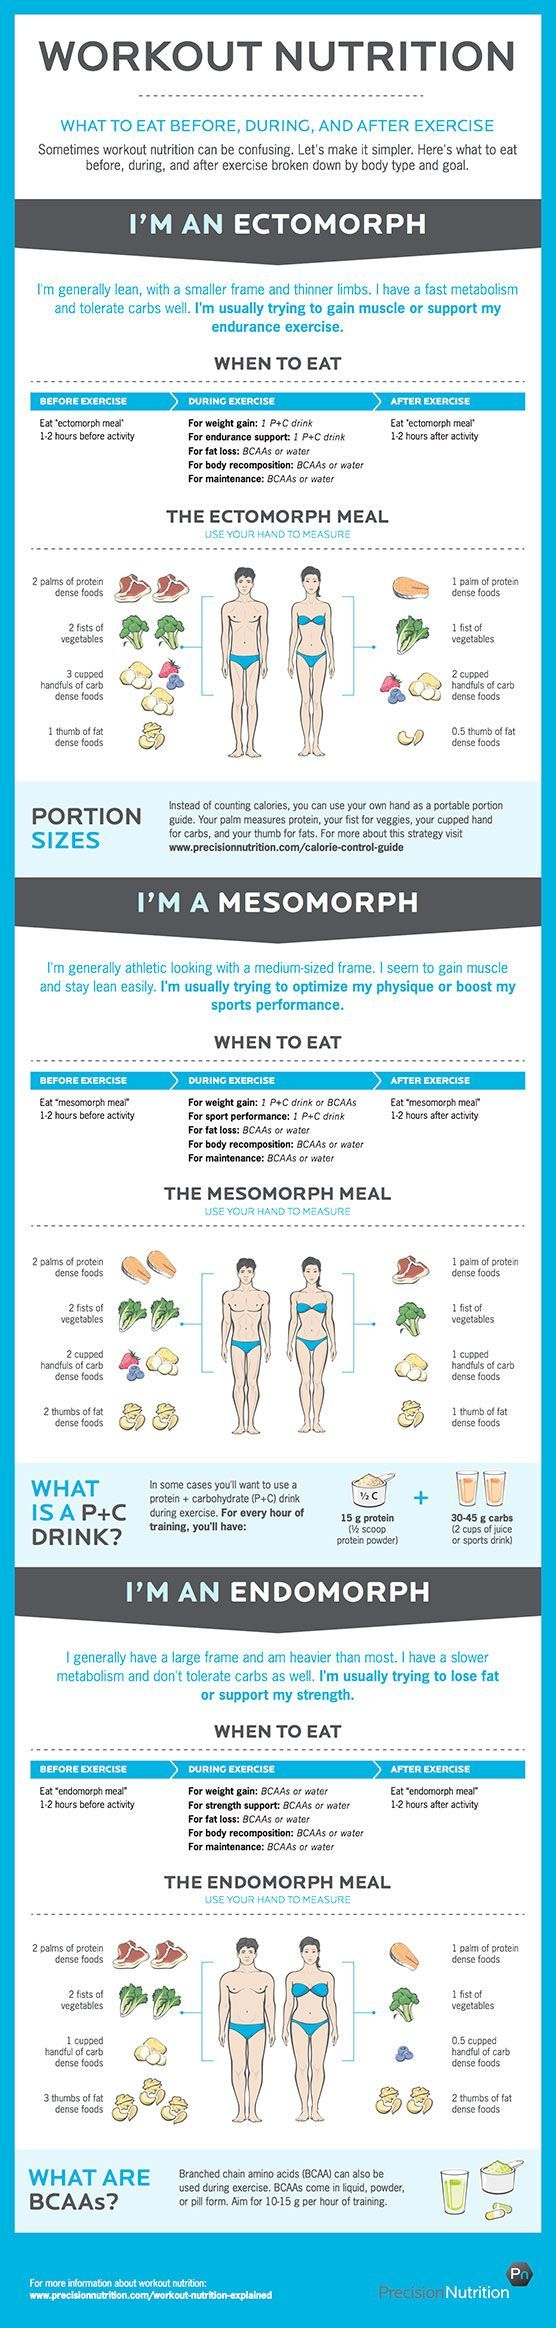 Everything You Need to Know About Workout Nutrition (Infographic) | LIVESTRONG.COM